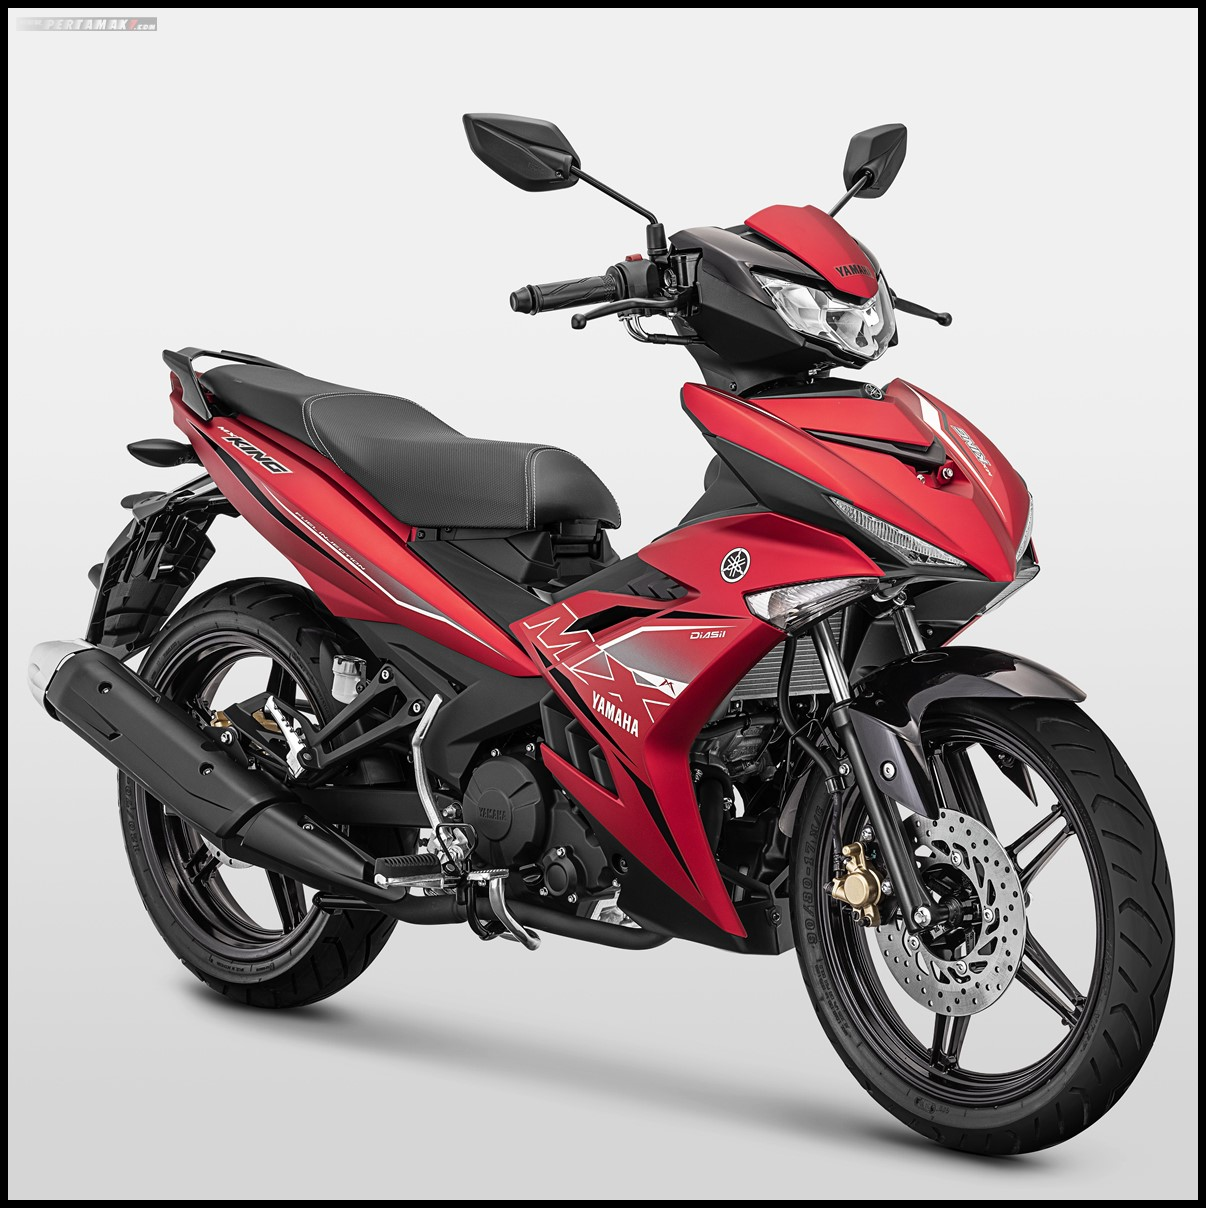 Yamaha MX KING 2019 Warna Merah P7